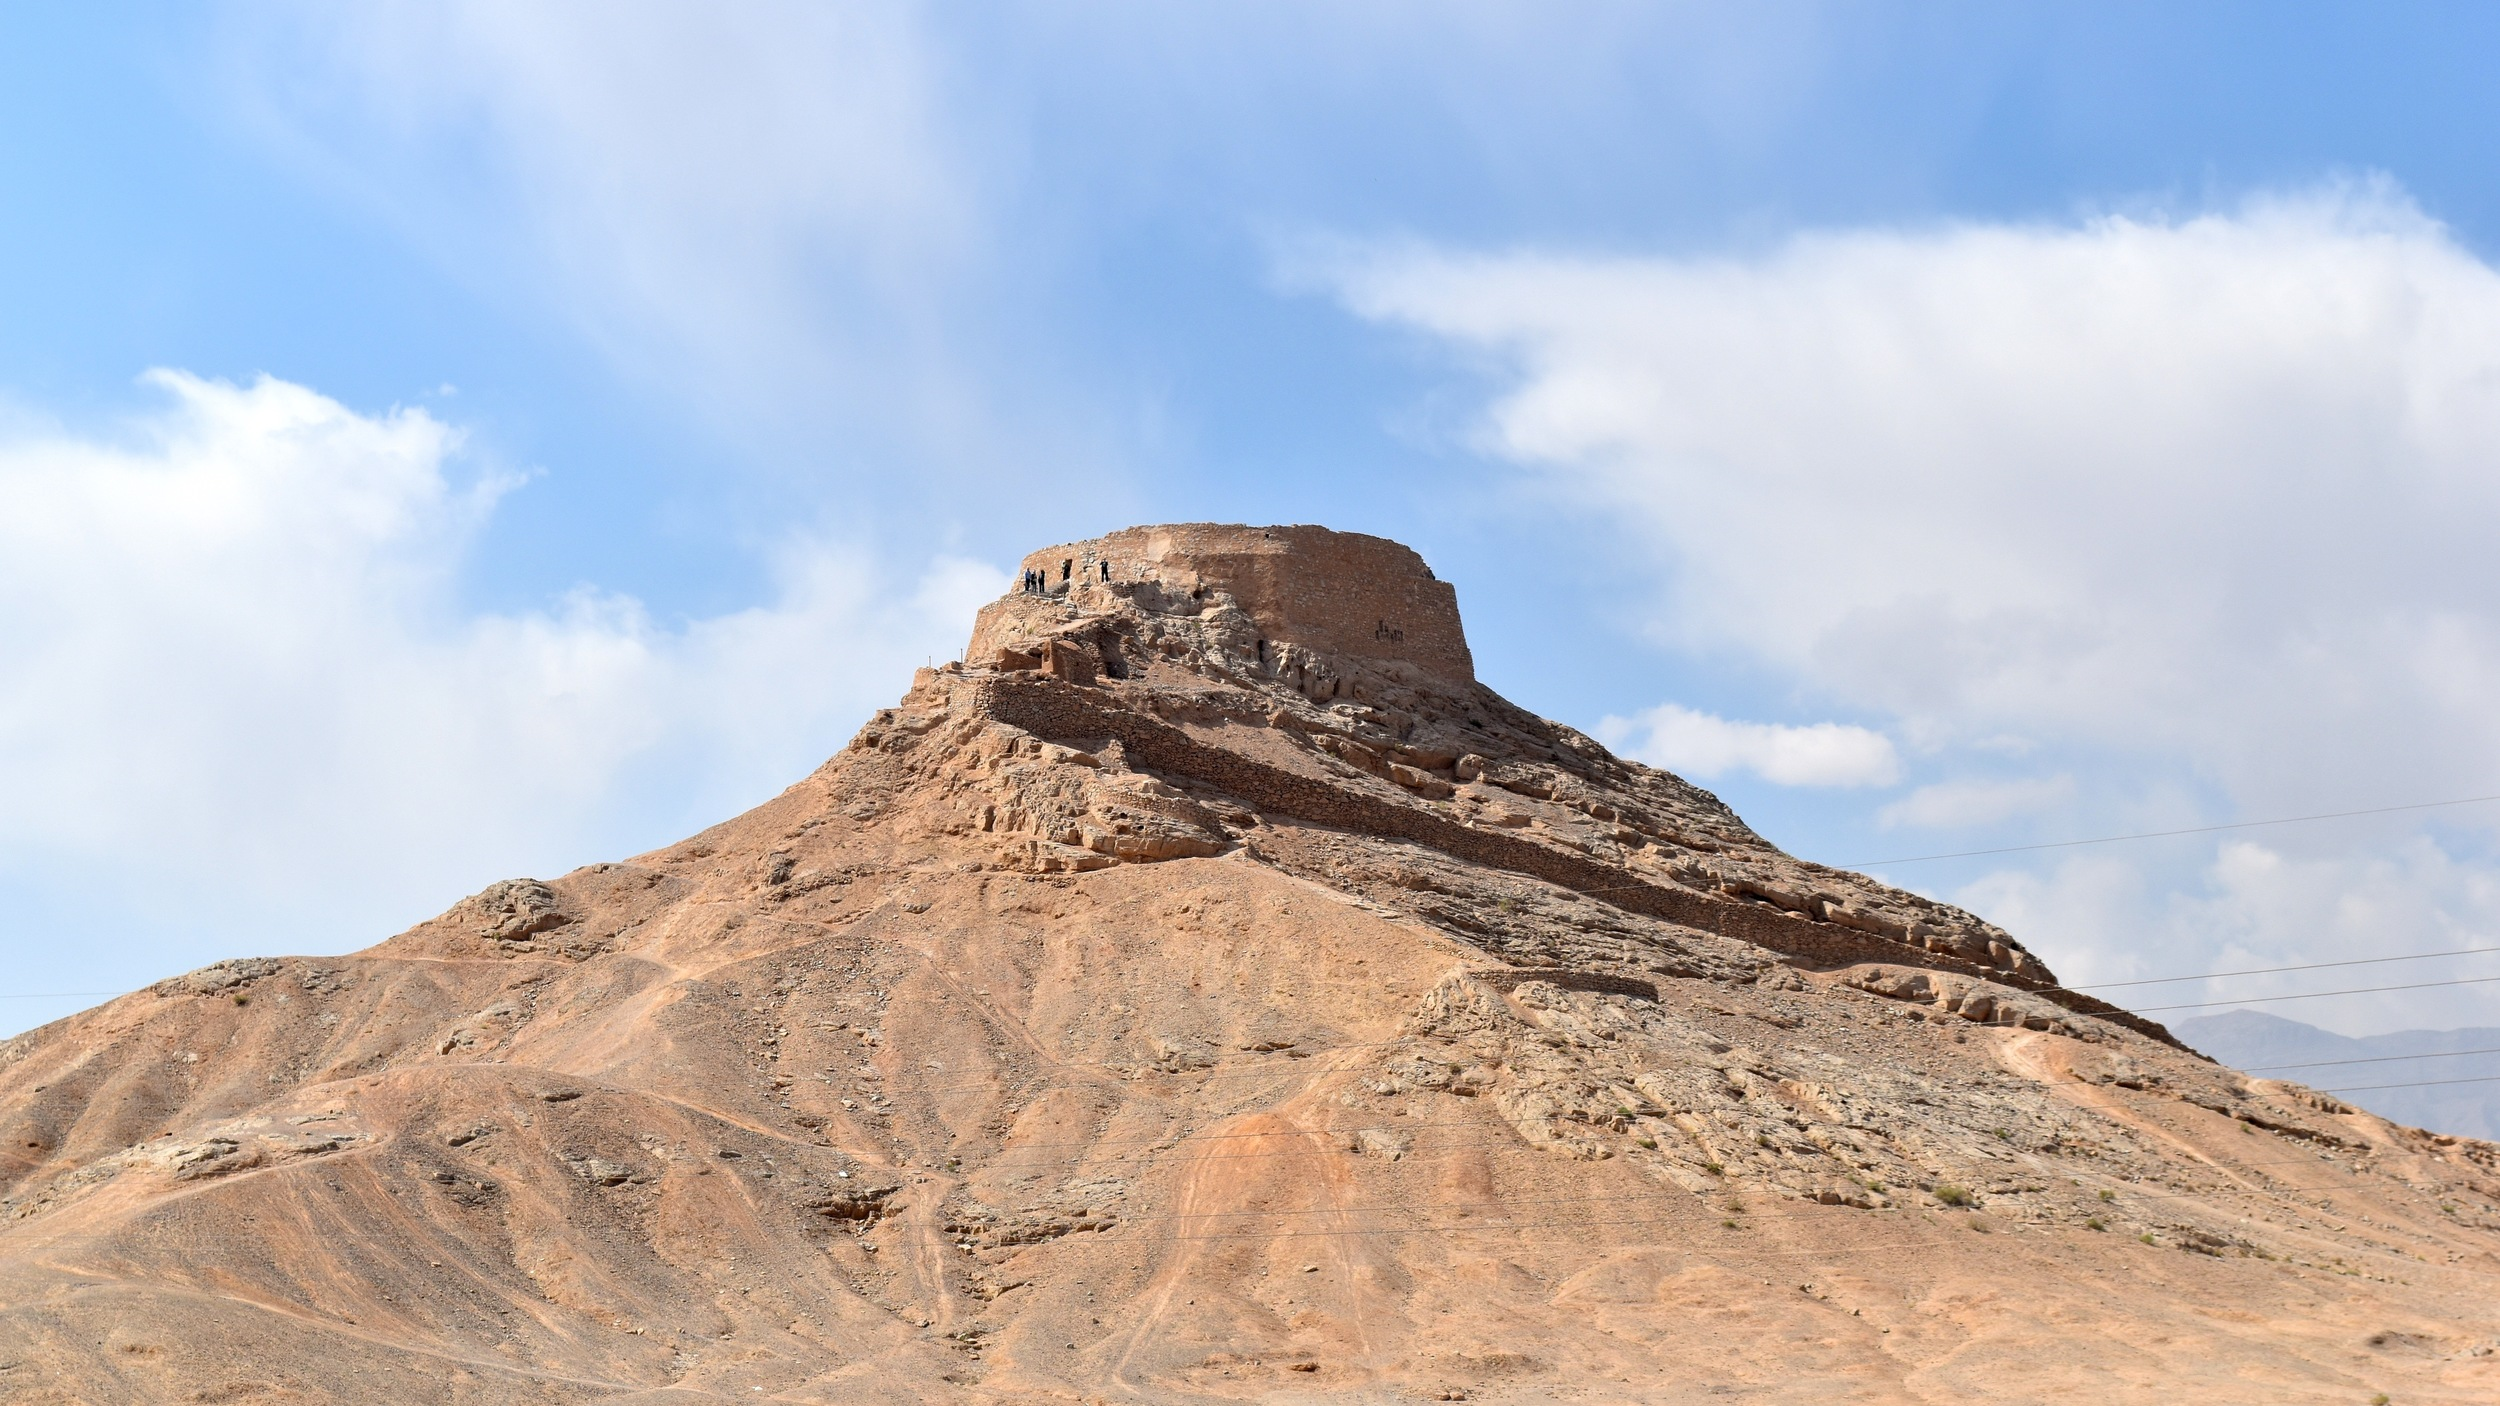 Iran-Yazd-Tower-of-Silence.jpg